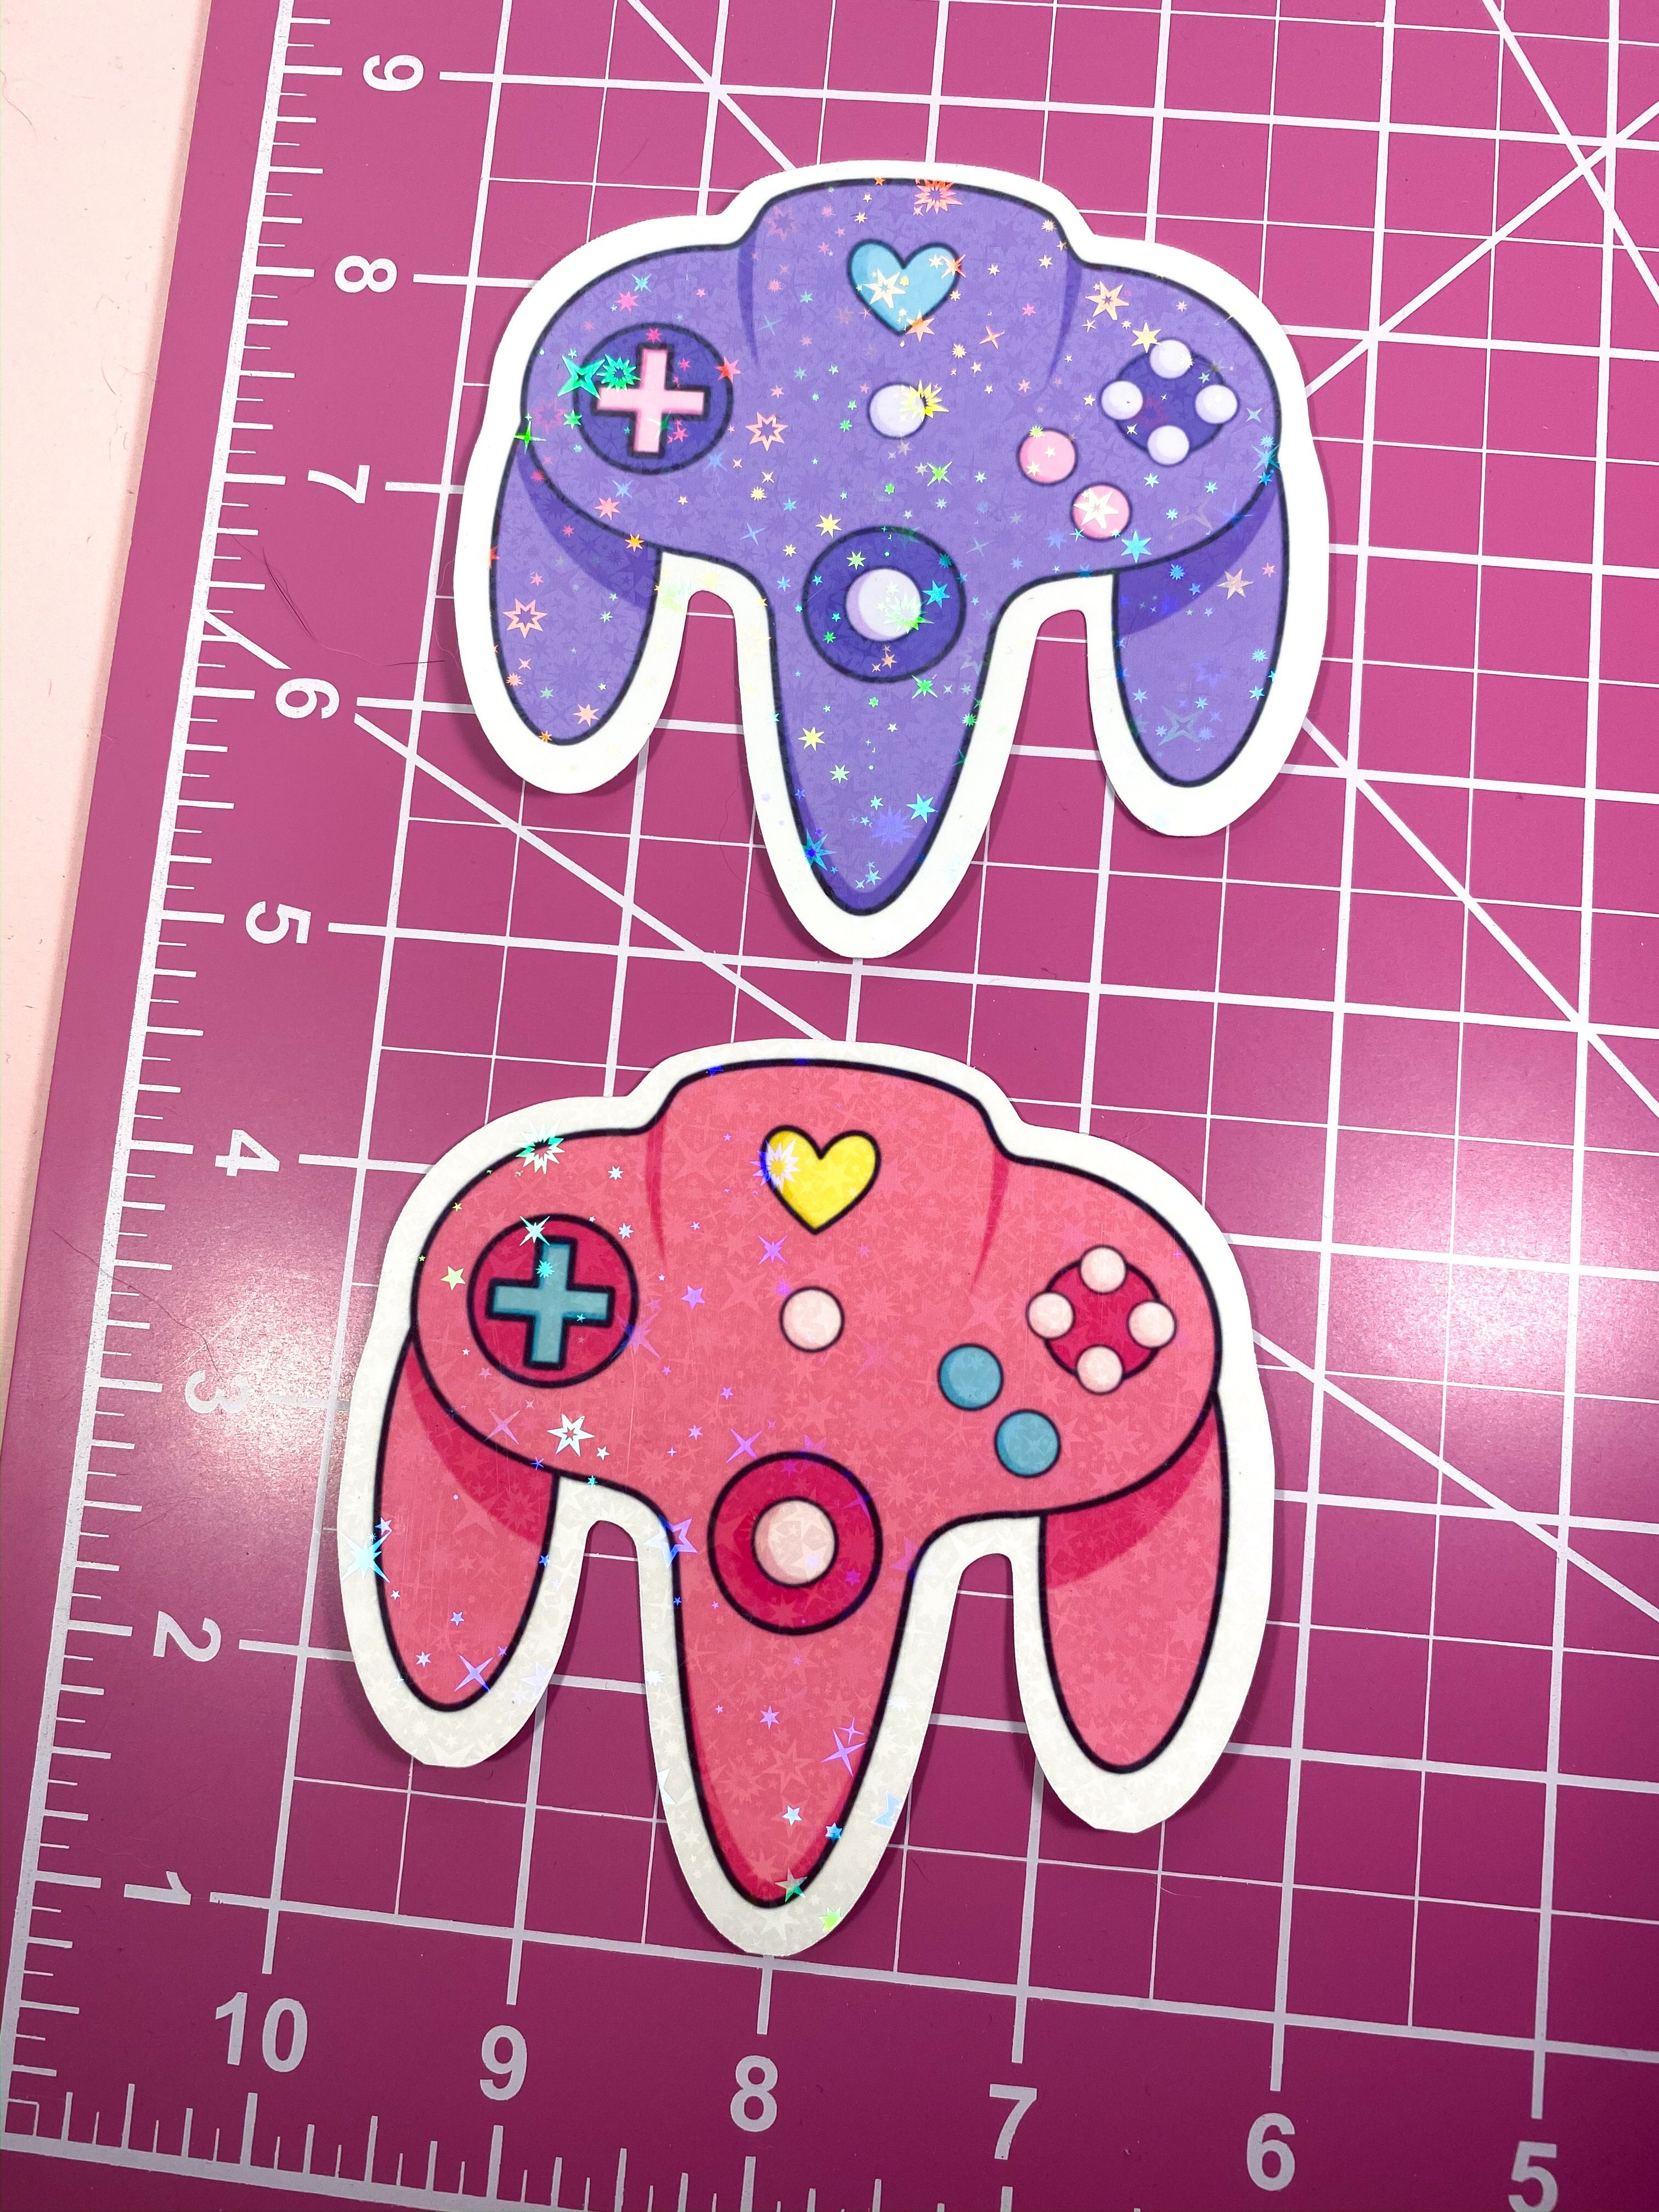 Cute gamer girl controller sticker holographic etsy